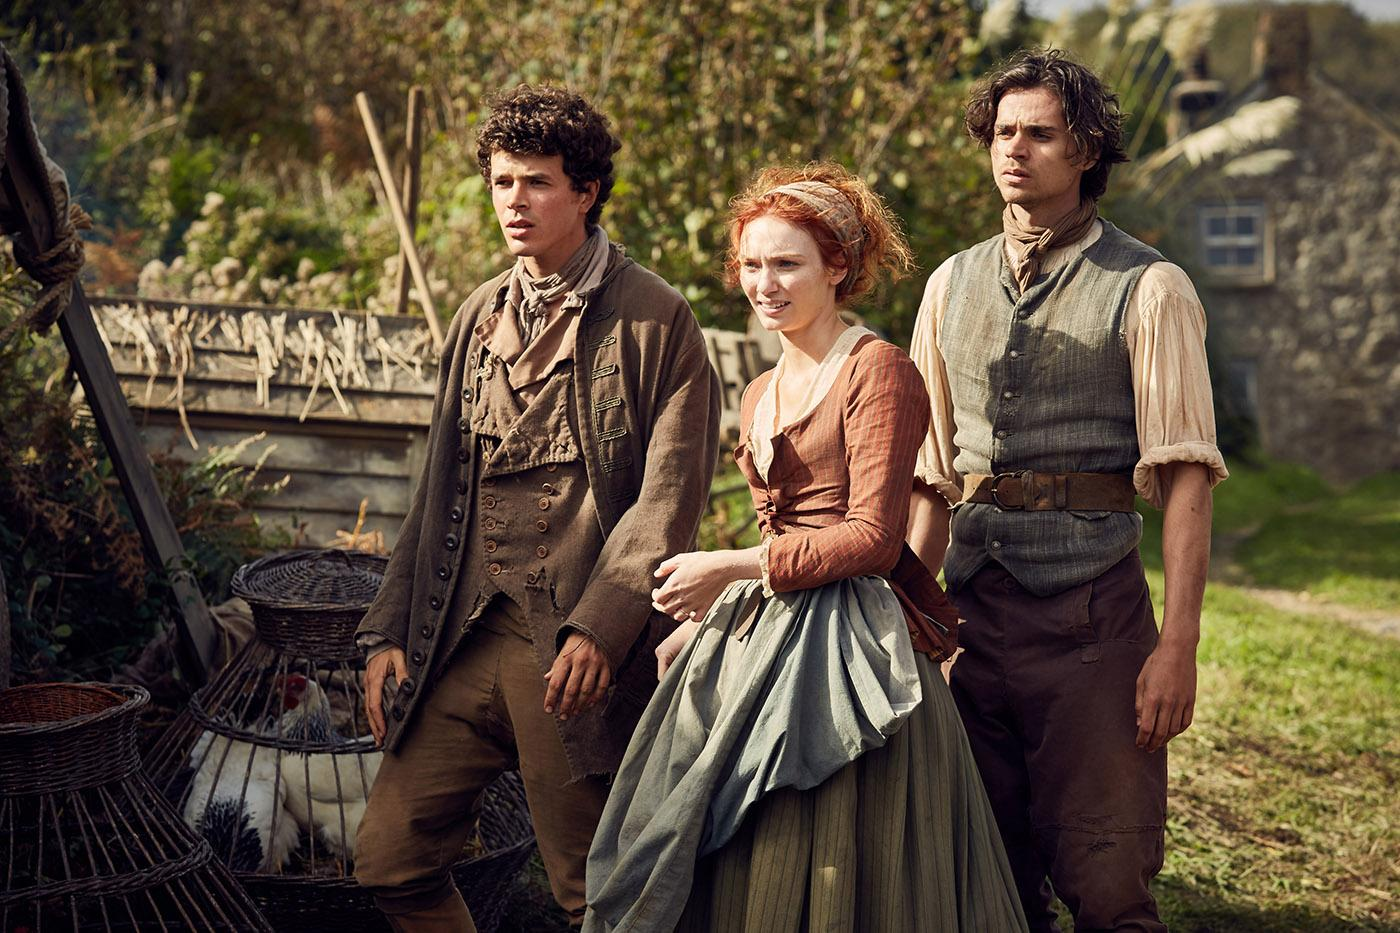 Poldark. Photo: Robert Viglasky/Mammoth Screen for BBC and MASTERPIECE